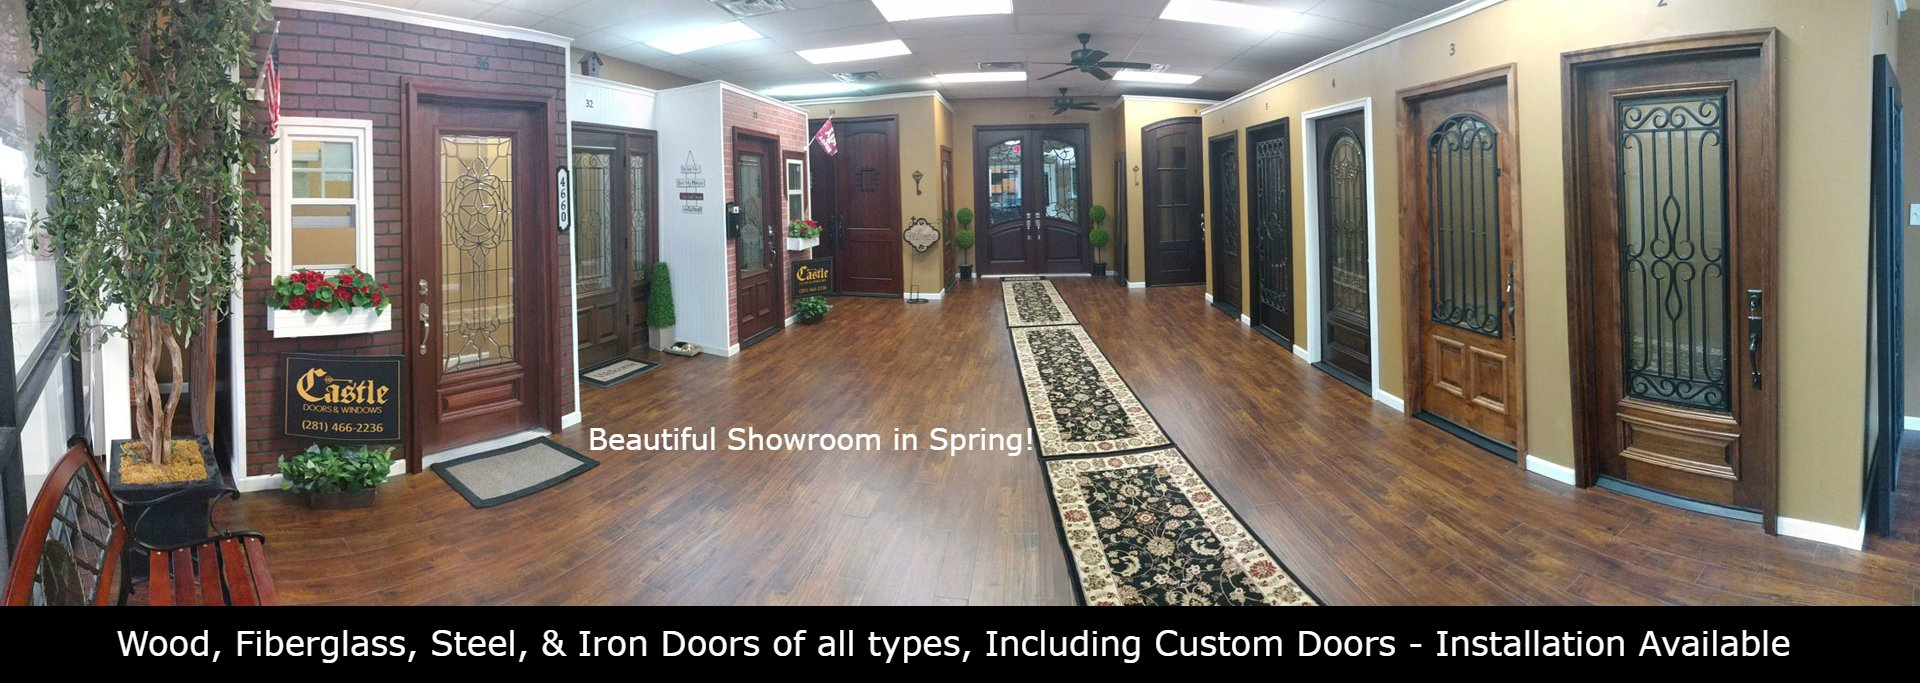 Castle Doors U0026 More Spring TX | Vinyl Windows, U0026 Woodworking